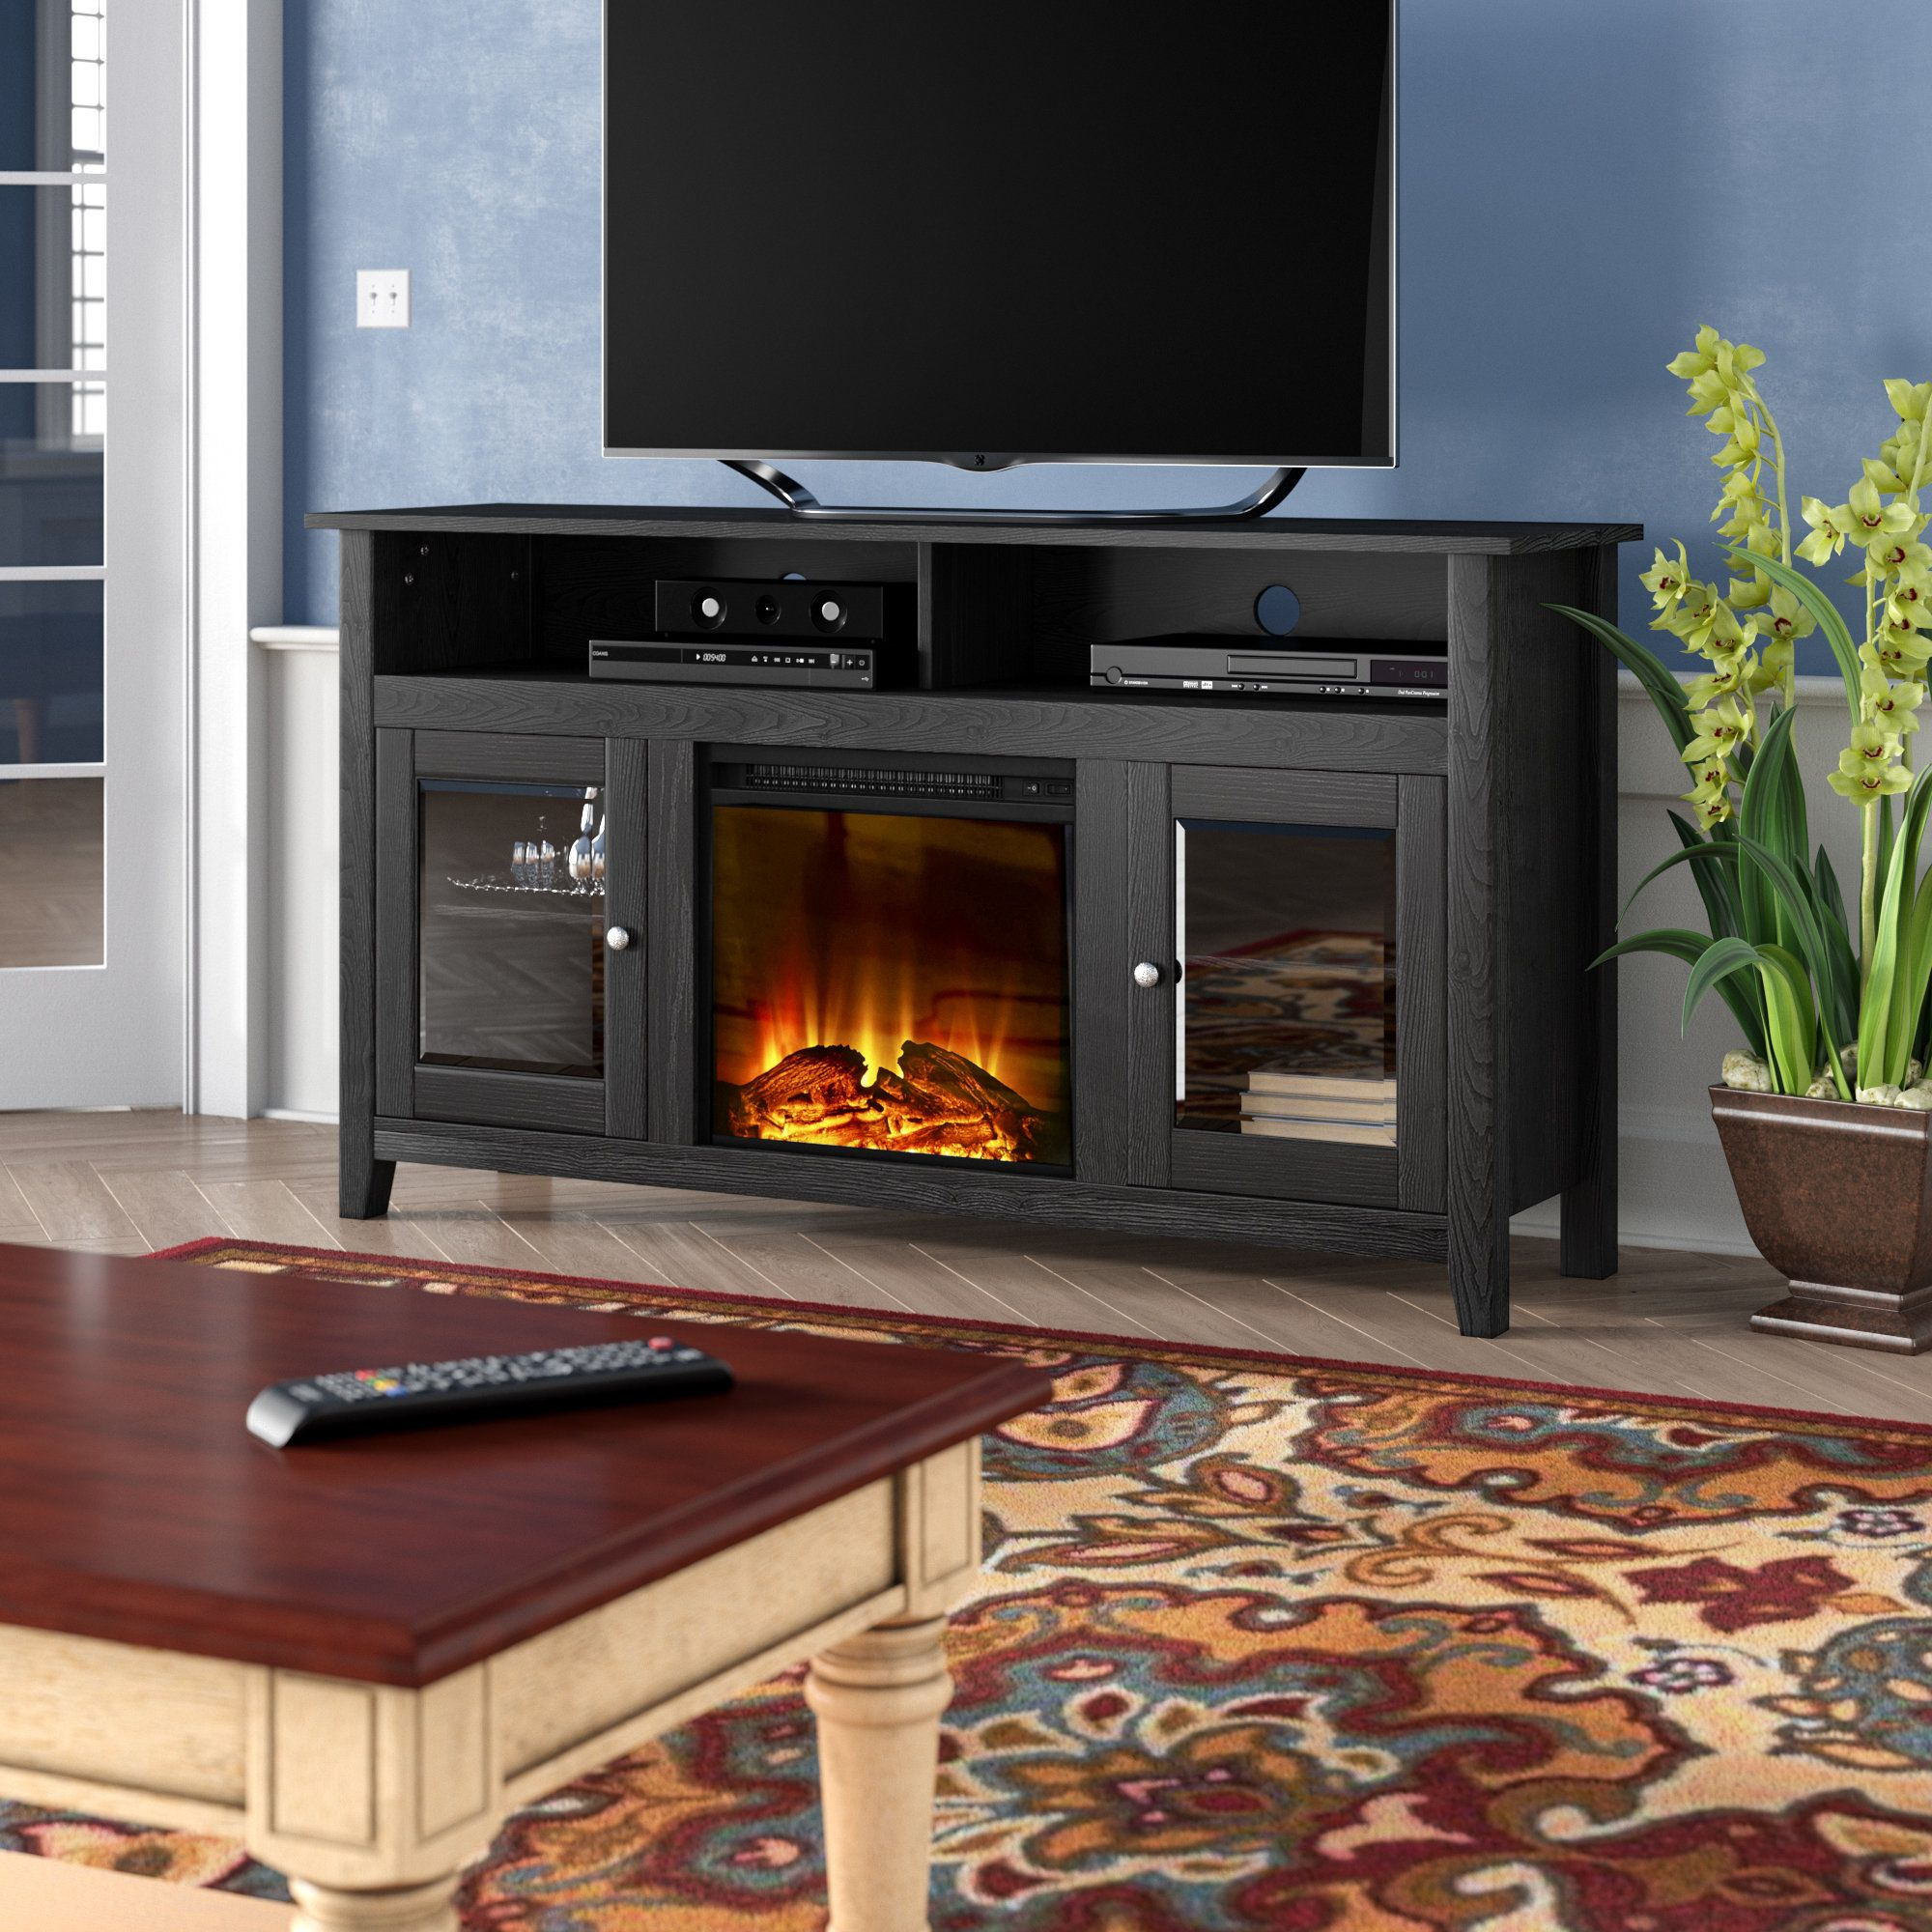 Kohn Tv Stand For Tvs Up To 58 Quot With Fireplace Included